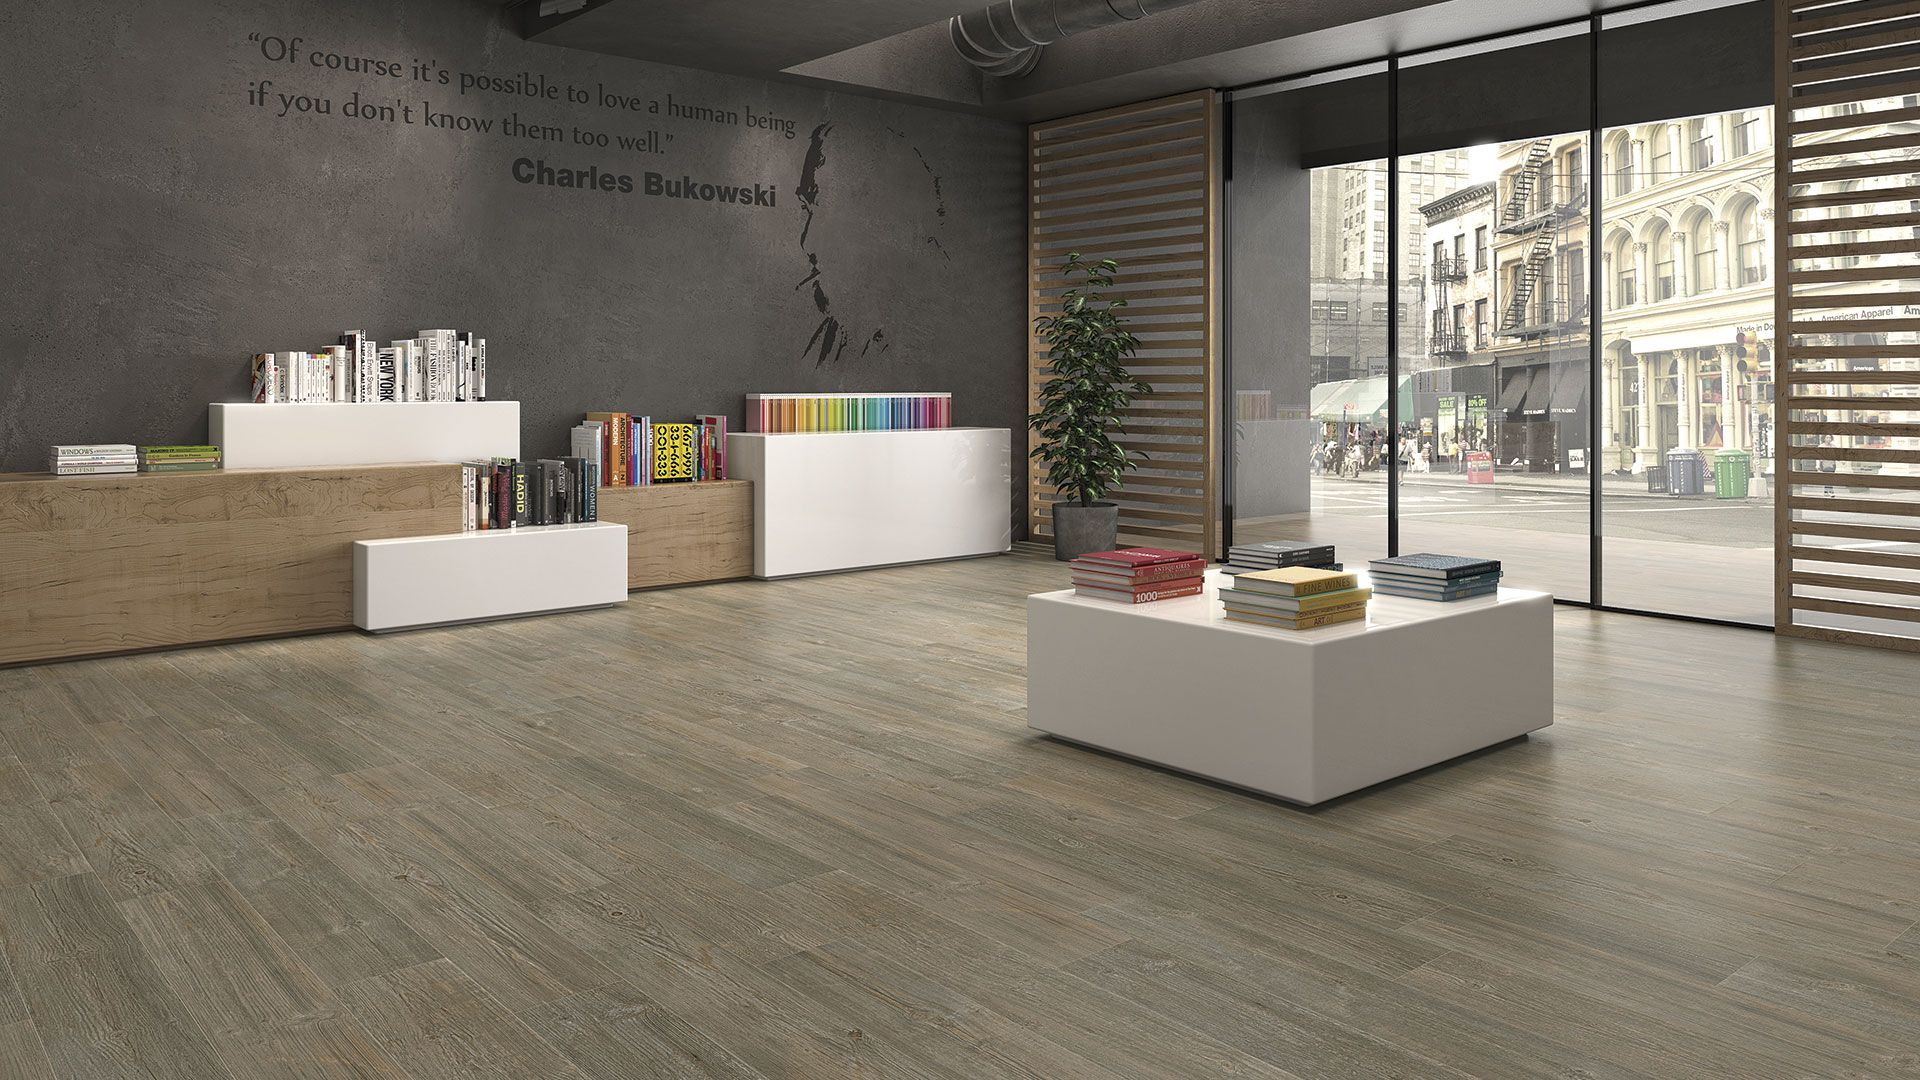 Desertwood by pamesa only 39m2 other designs pinterest buy desertwood argent timber look tiles and save buy desertwood argent timber look spanish porcelain tile at sydneys lowest price at tfo doublecrazyfo Images